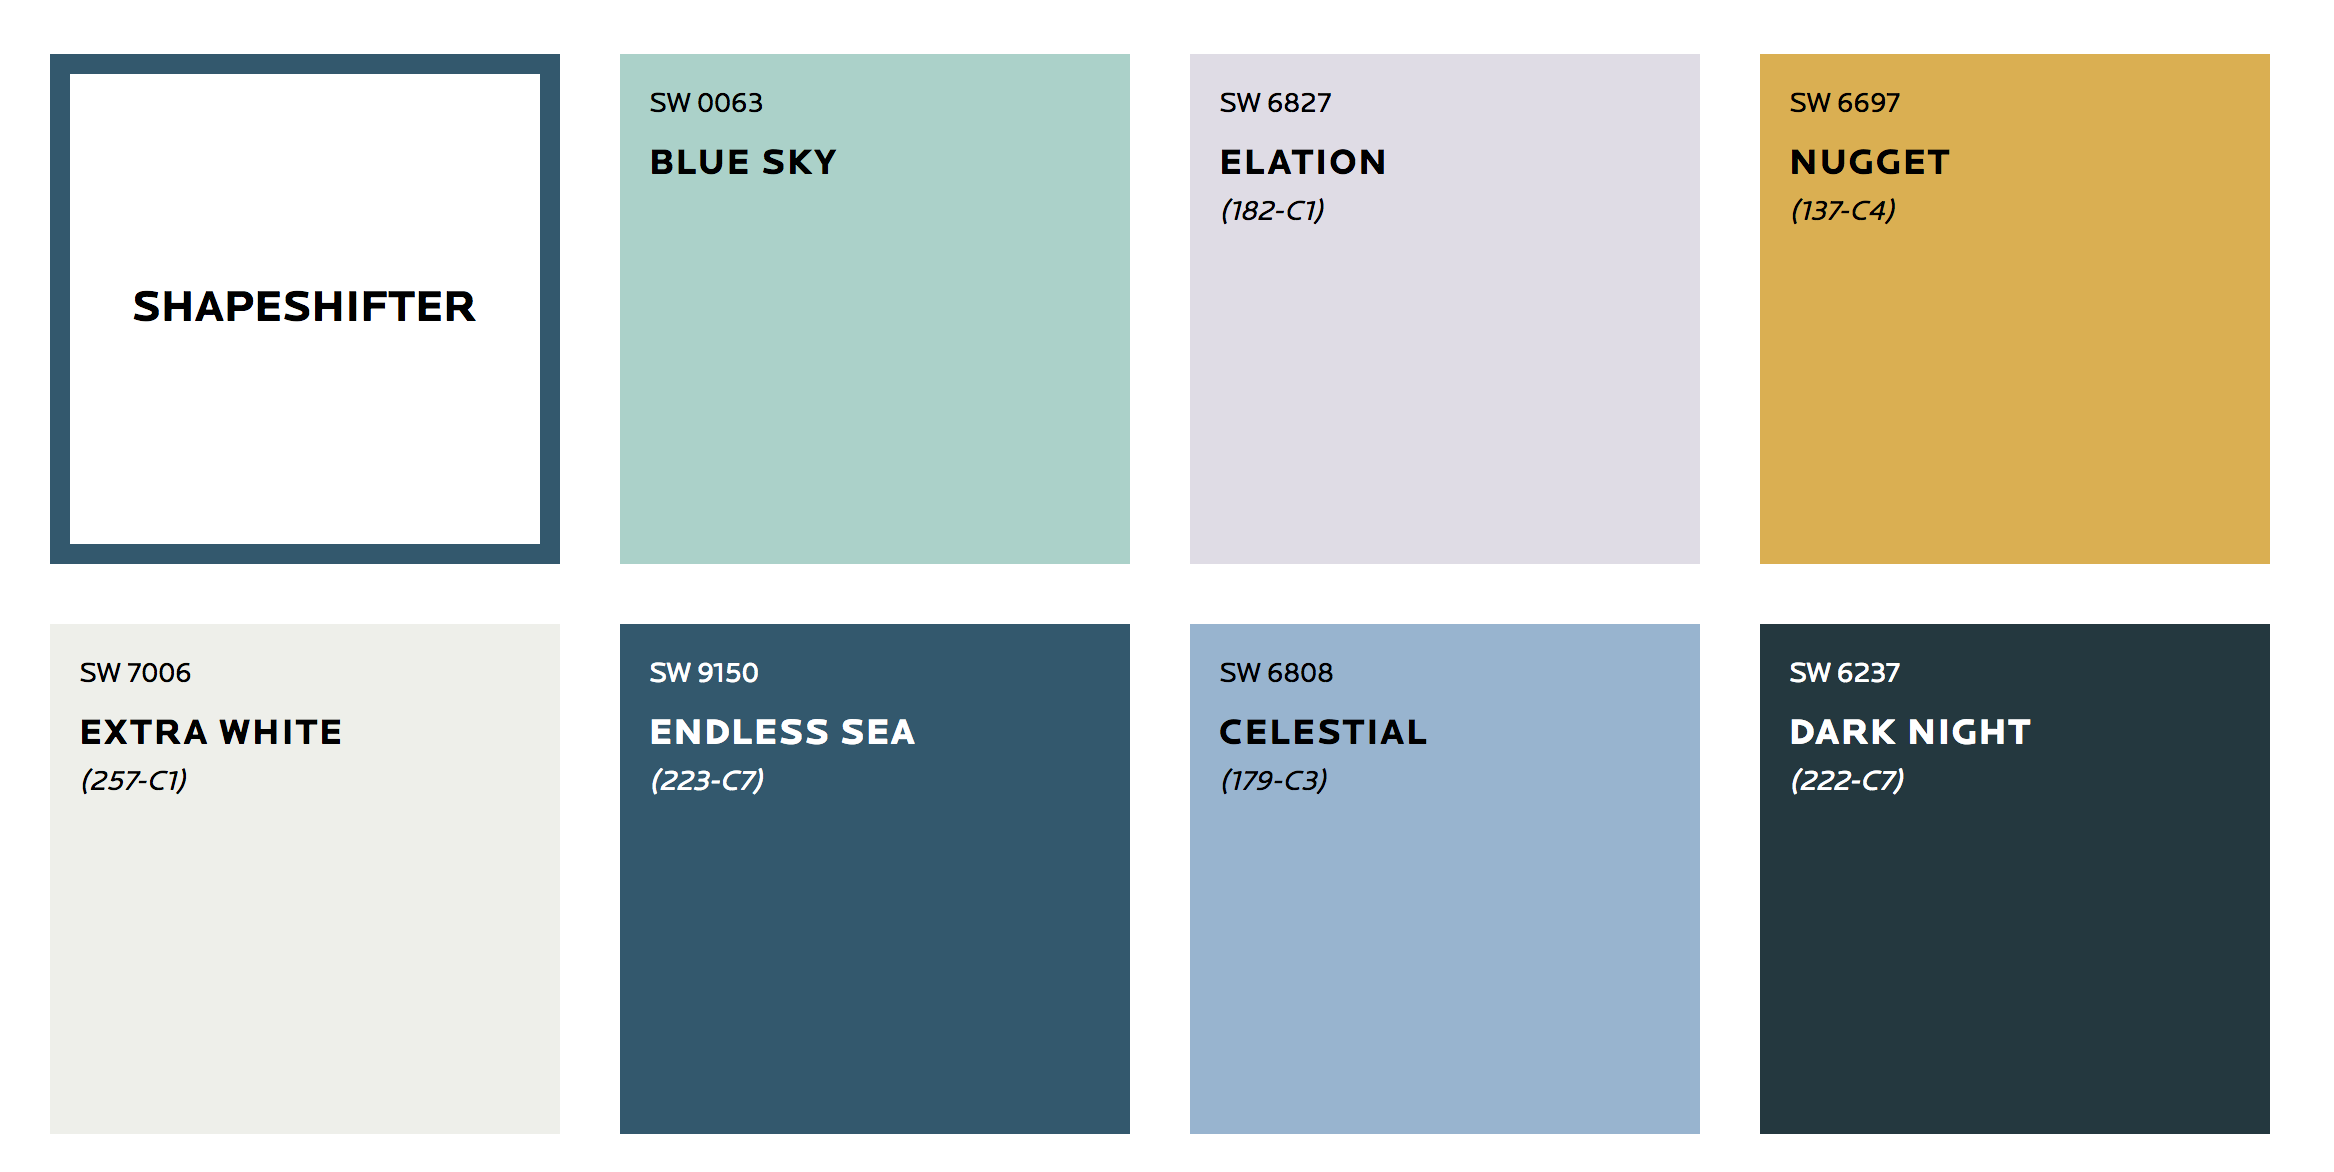 Find Out Here What Colors Are Trending In 2019 Calendar 2 2019 calendar Find Out Here Which Colors Are Trending In 2019 Calendar Find Out Here What Colors Are Trending In 2019 Calendar 2